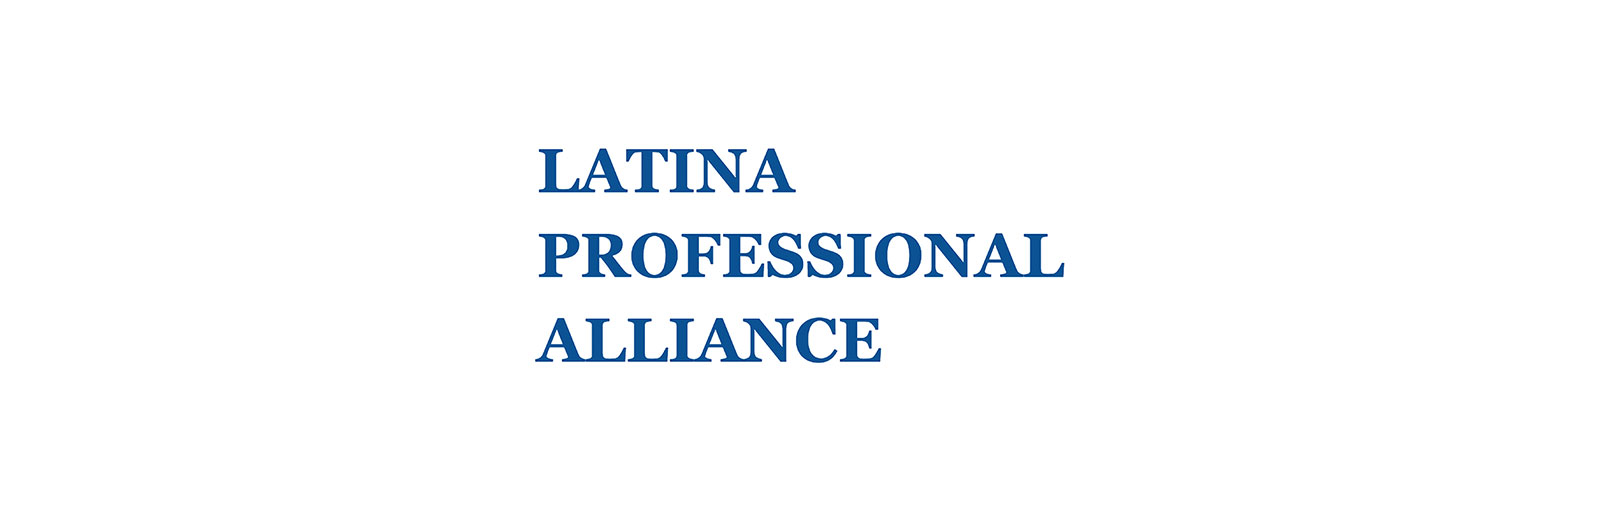 partners-logo-Latina-Professional-Alliance